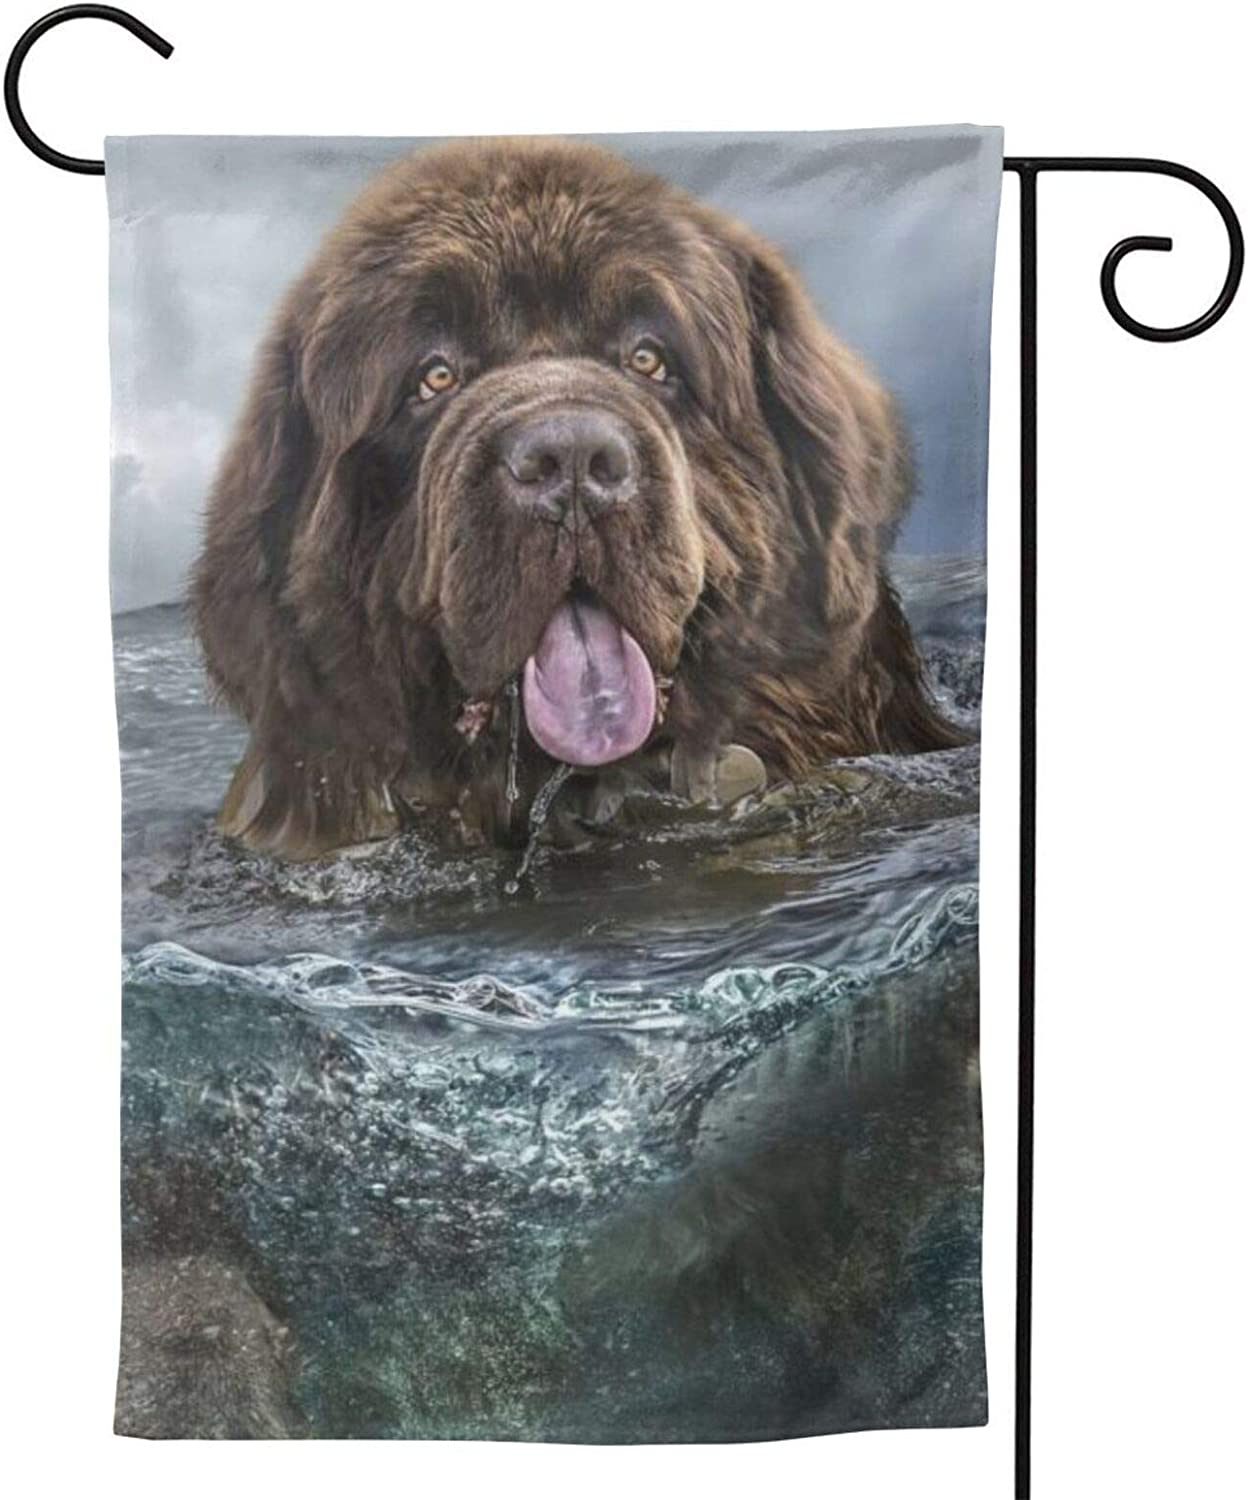 MINIOZE Newfoundland Underwater Dogs Funny Party Themed Flag Welcome Outdoor Outside Decorations Ornament Picks Garden Yard Decor Double Sided 12.5X 18 Flag